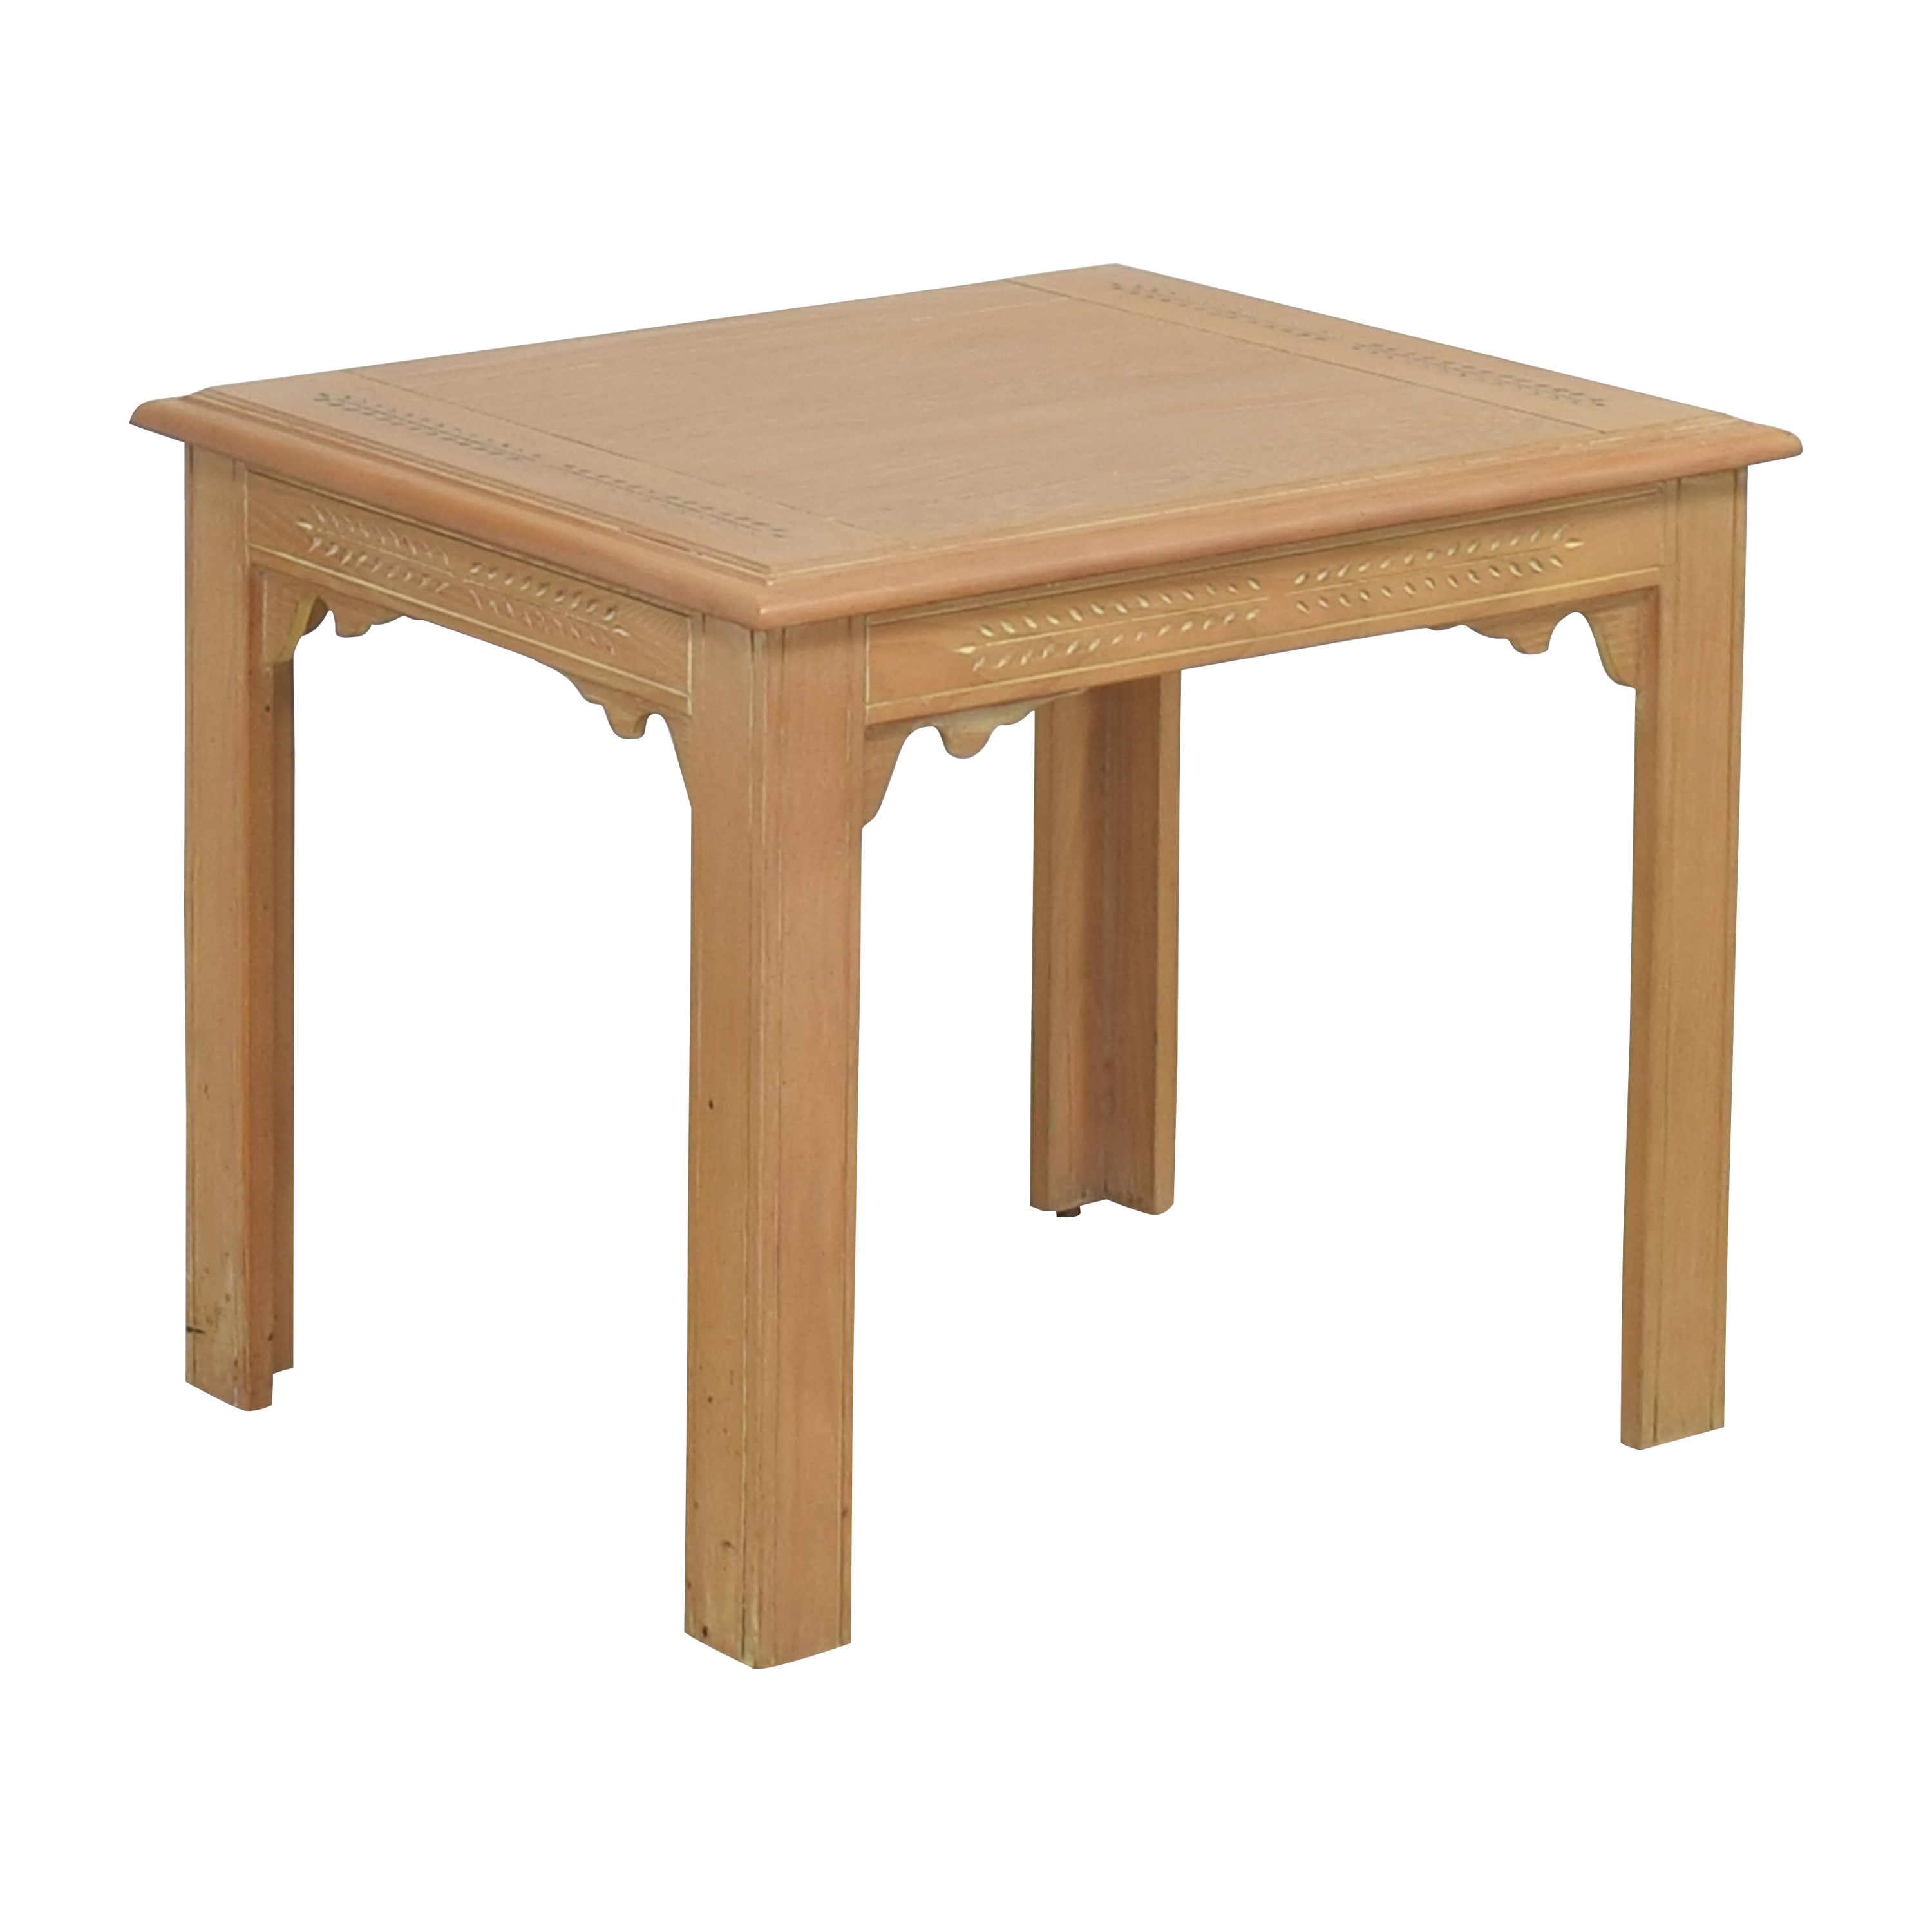 The Lane Company Virginia Maid Side Table / End Tables